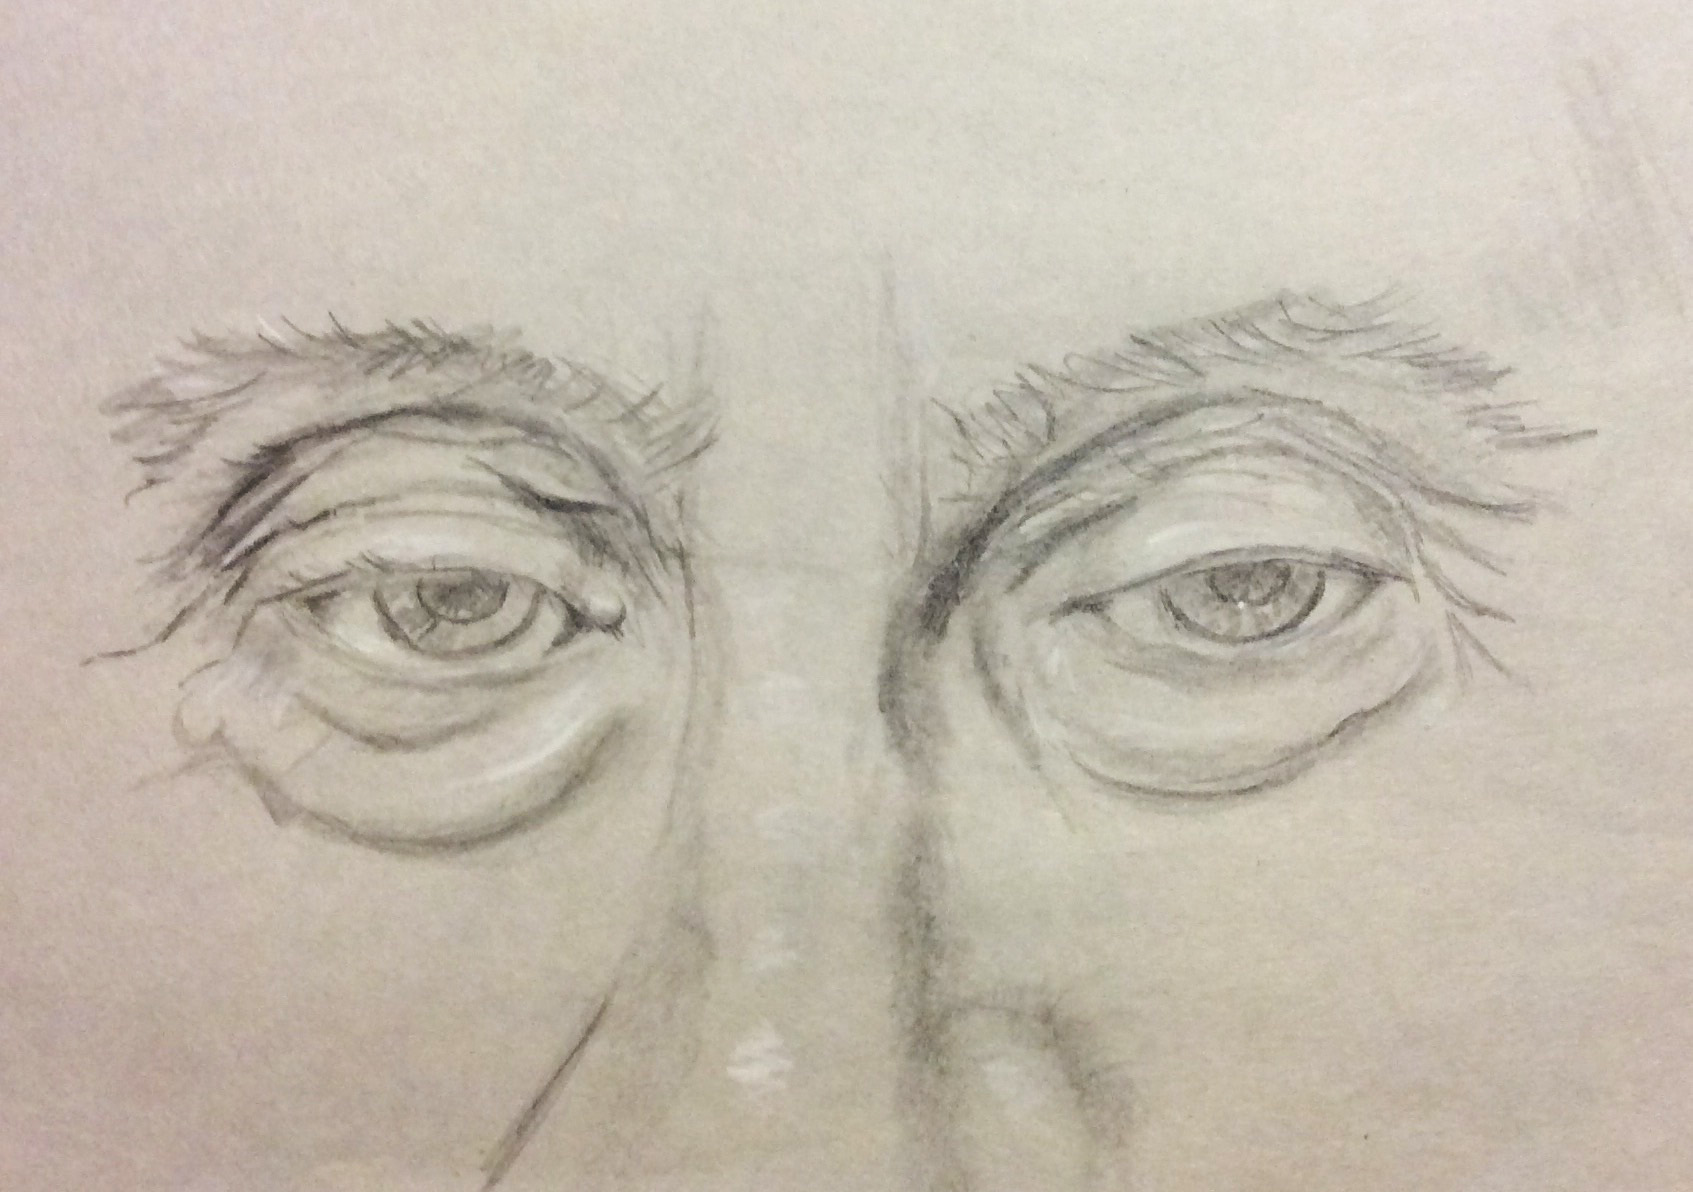 Old man's eyes